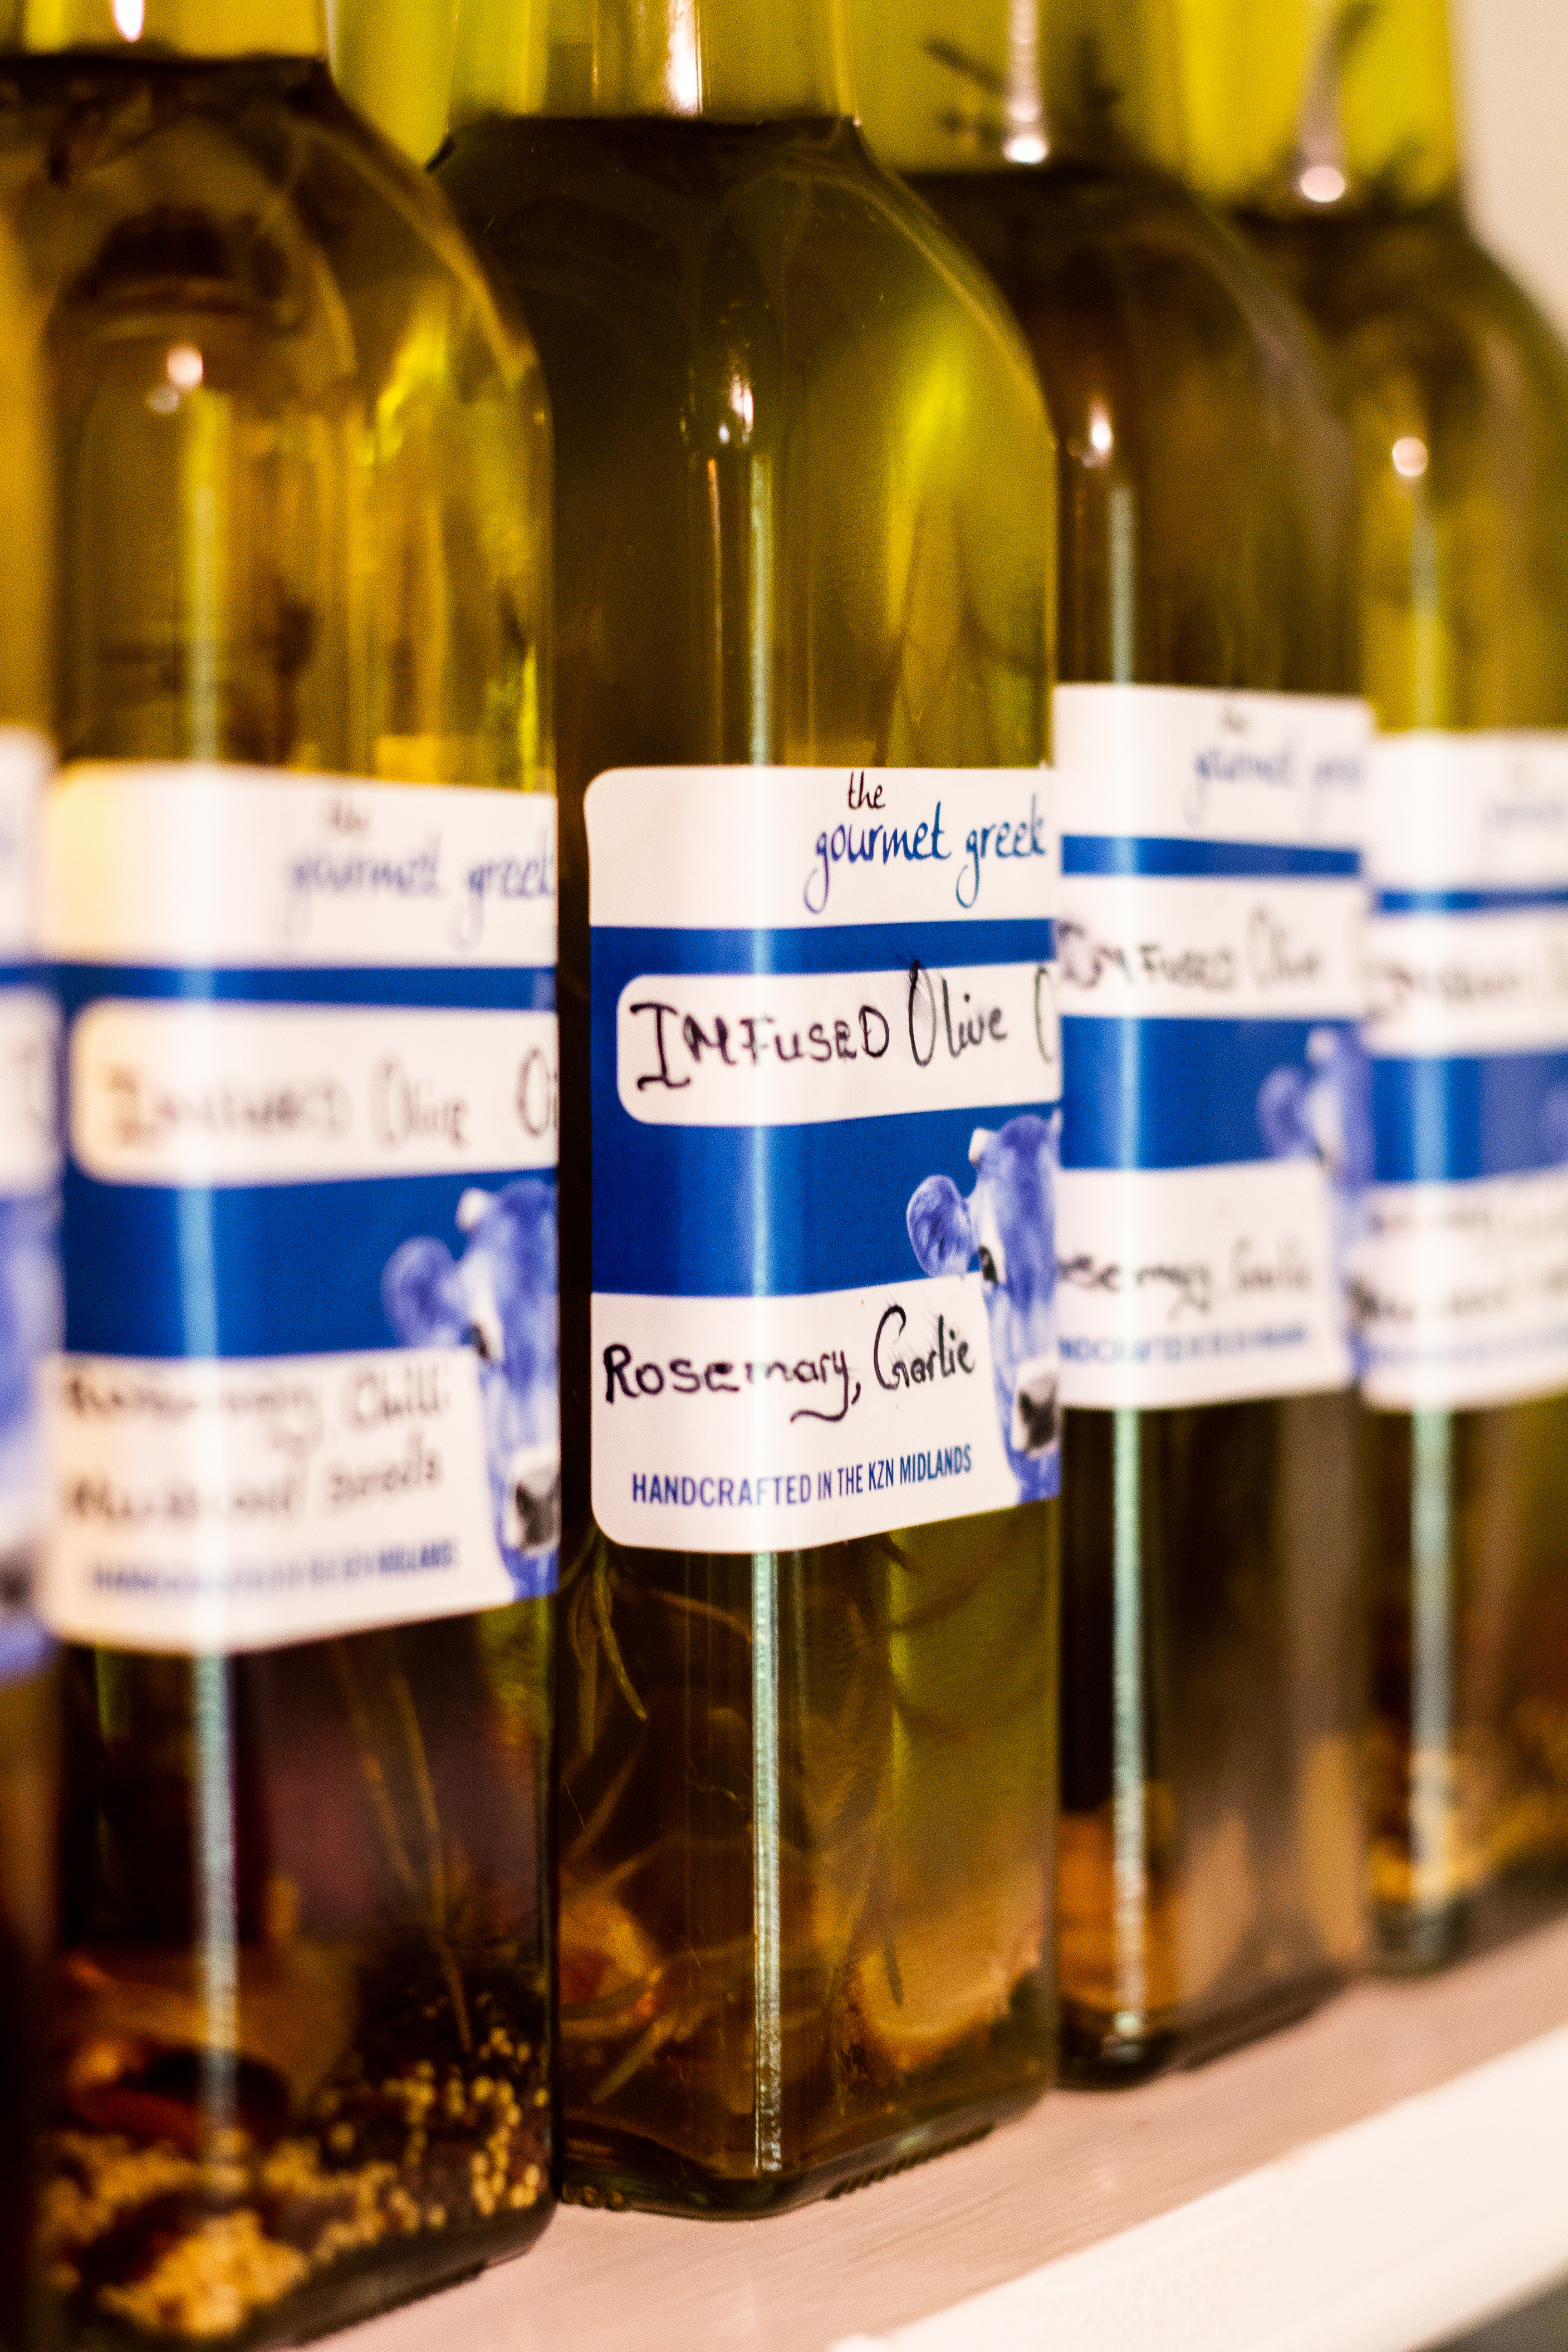 The Gourmet Greek Infused Olive Oil